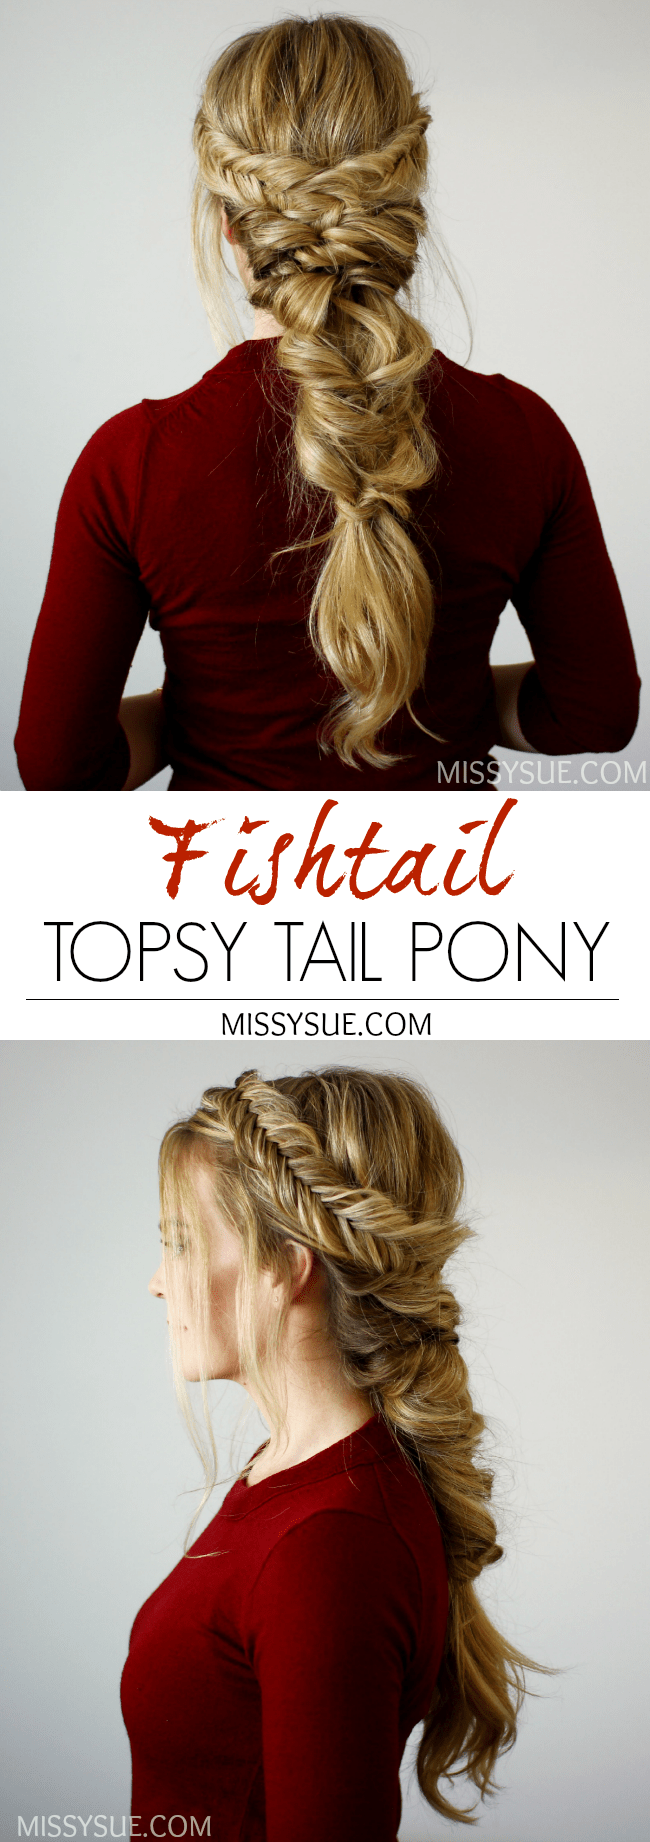 fishtail-topsy-tail-pony-tutorial